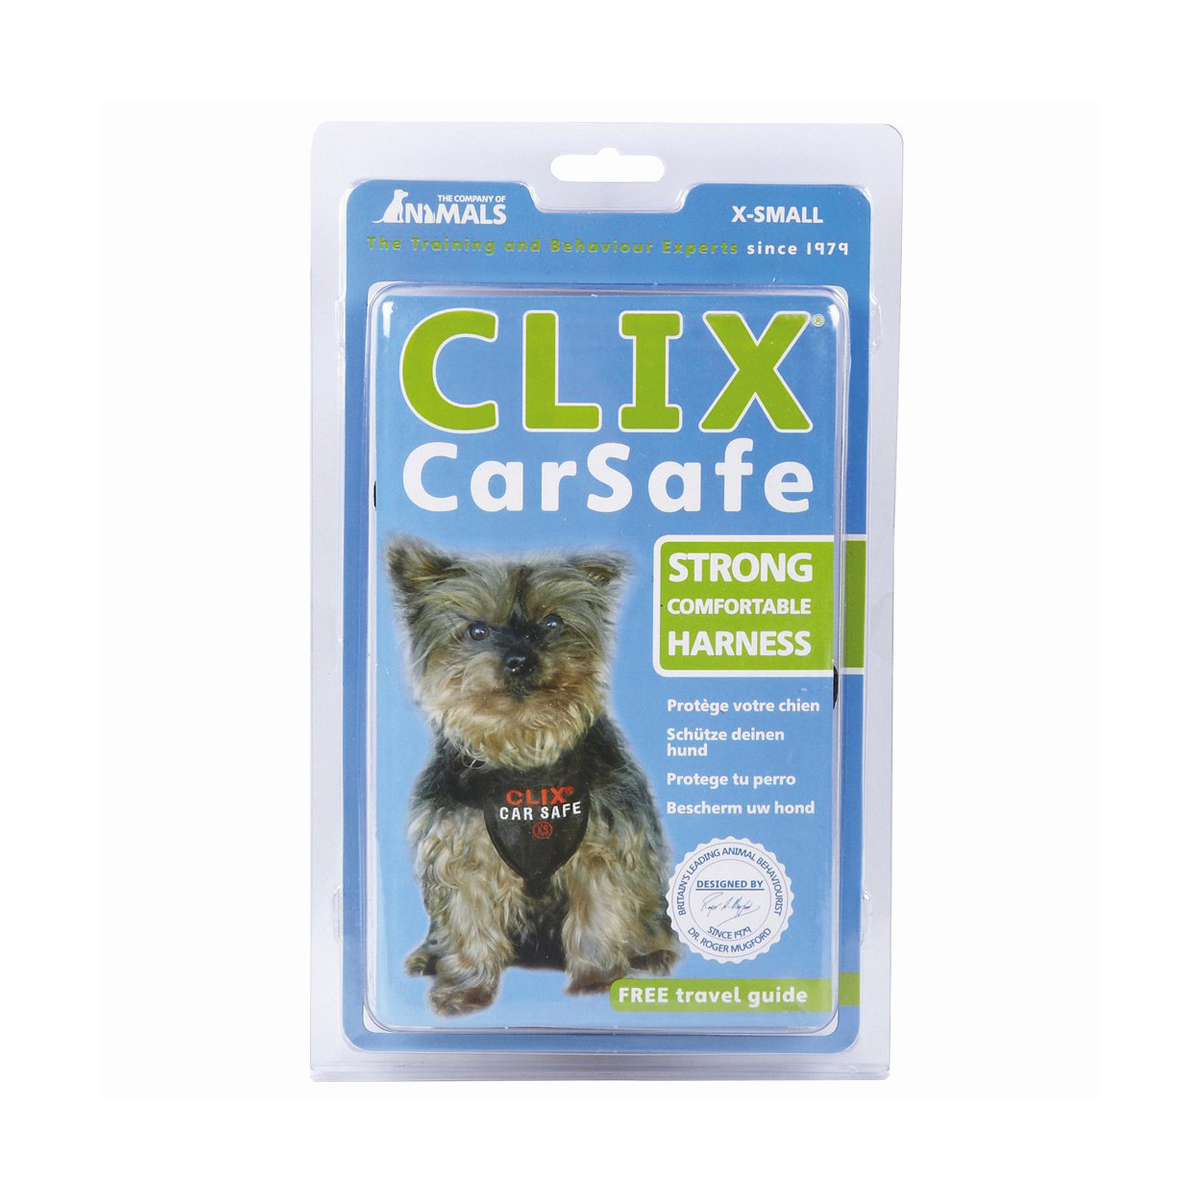 CLIX CAR SAFE HARNESS ES 00001